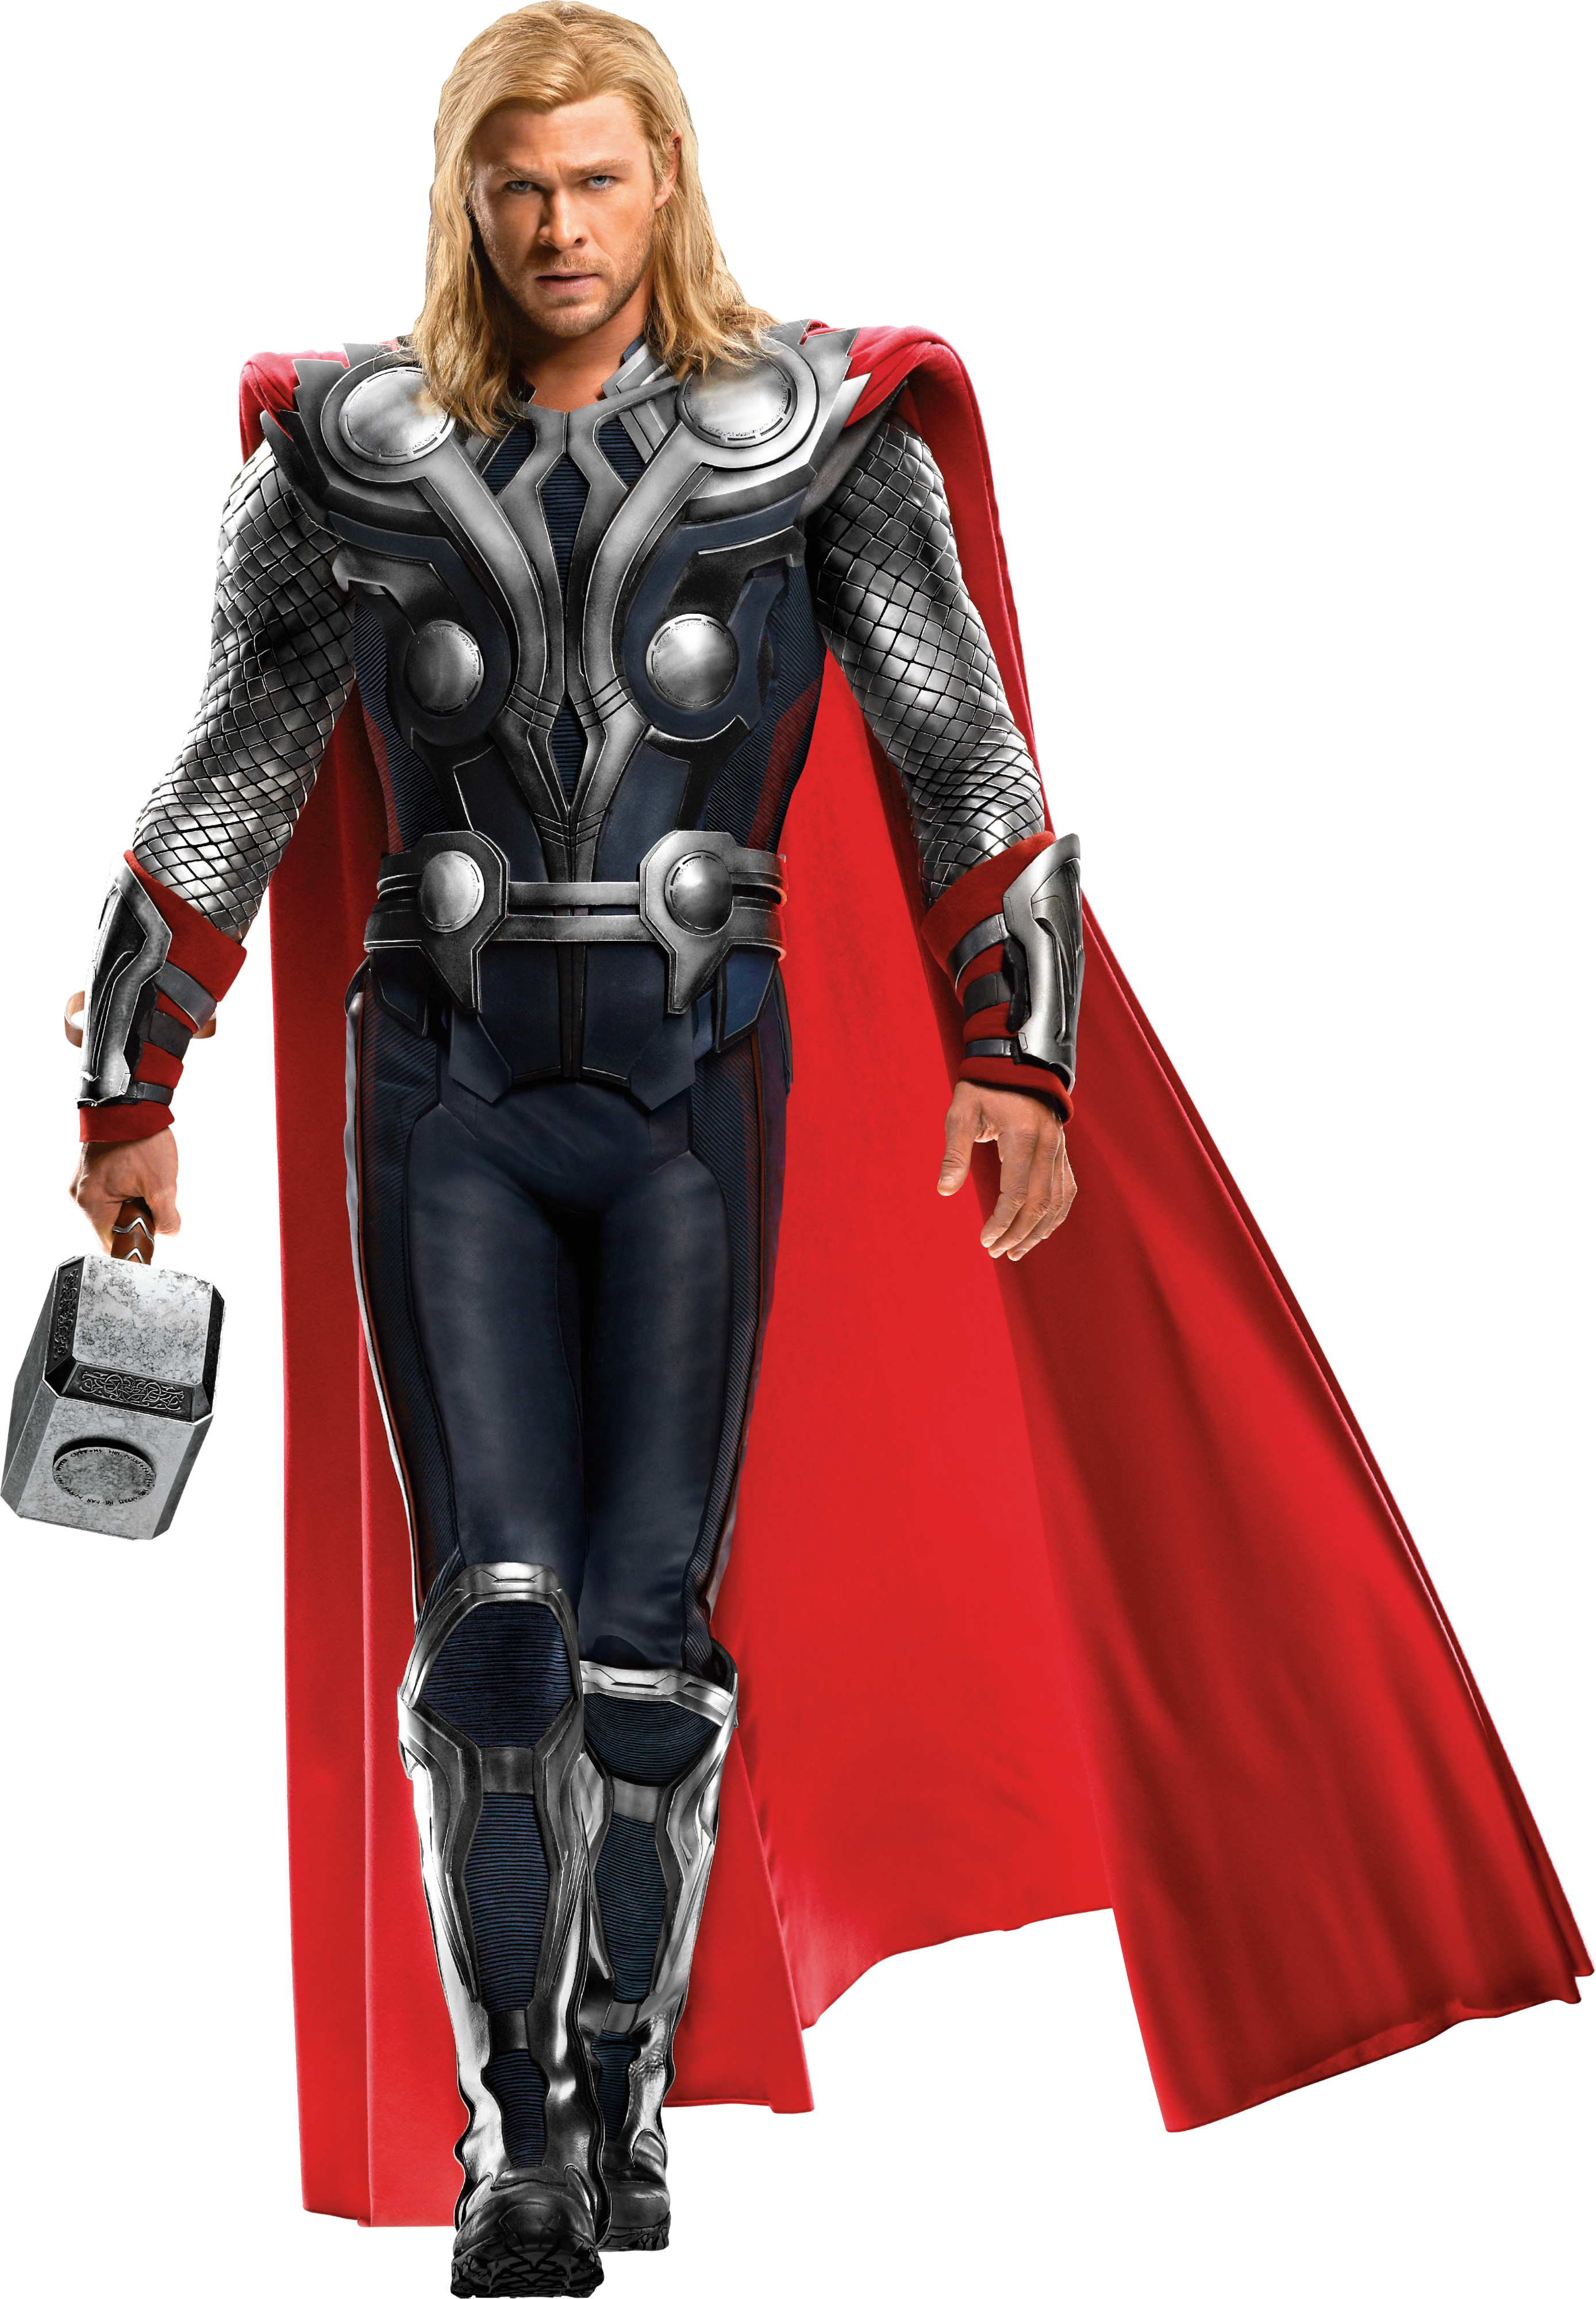 The America Thor Iron Chris Hemsworth Captain PNG Image